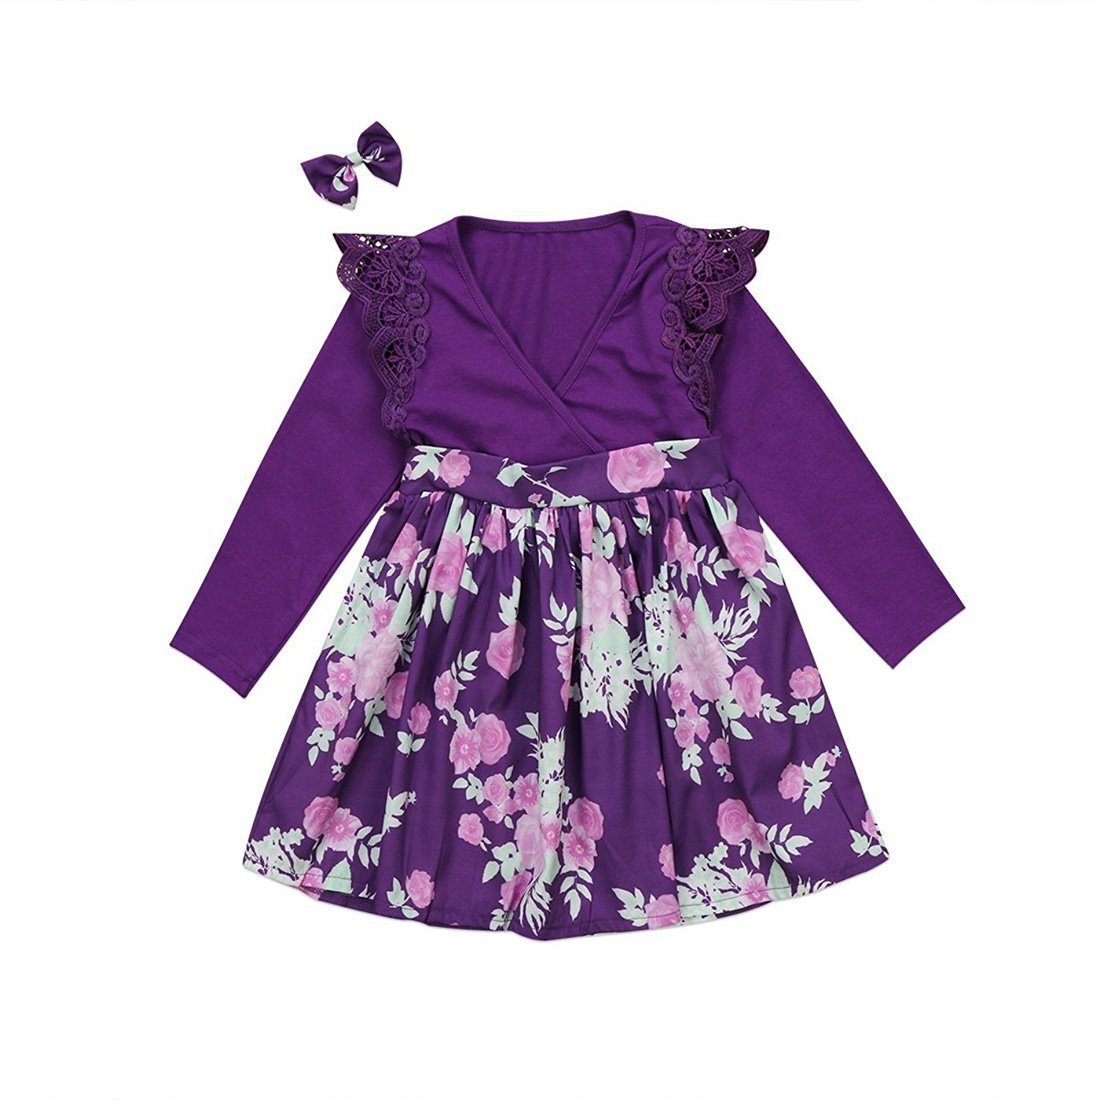 6beacf7531bd98 Amazon.com: GSHOOTS Baby Girls' Little Sister Romper Big Sister Dress  Family Matching Outfit Lace Sleeve Bodysuit Floral Skirt: Clothing